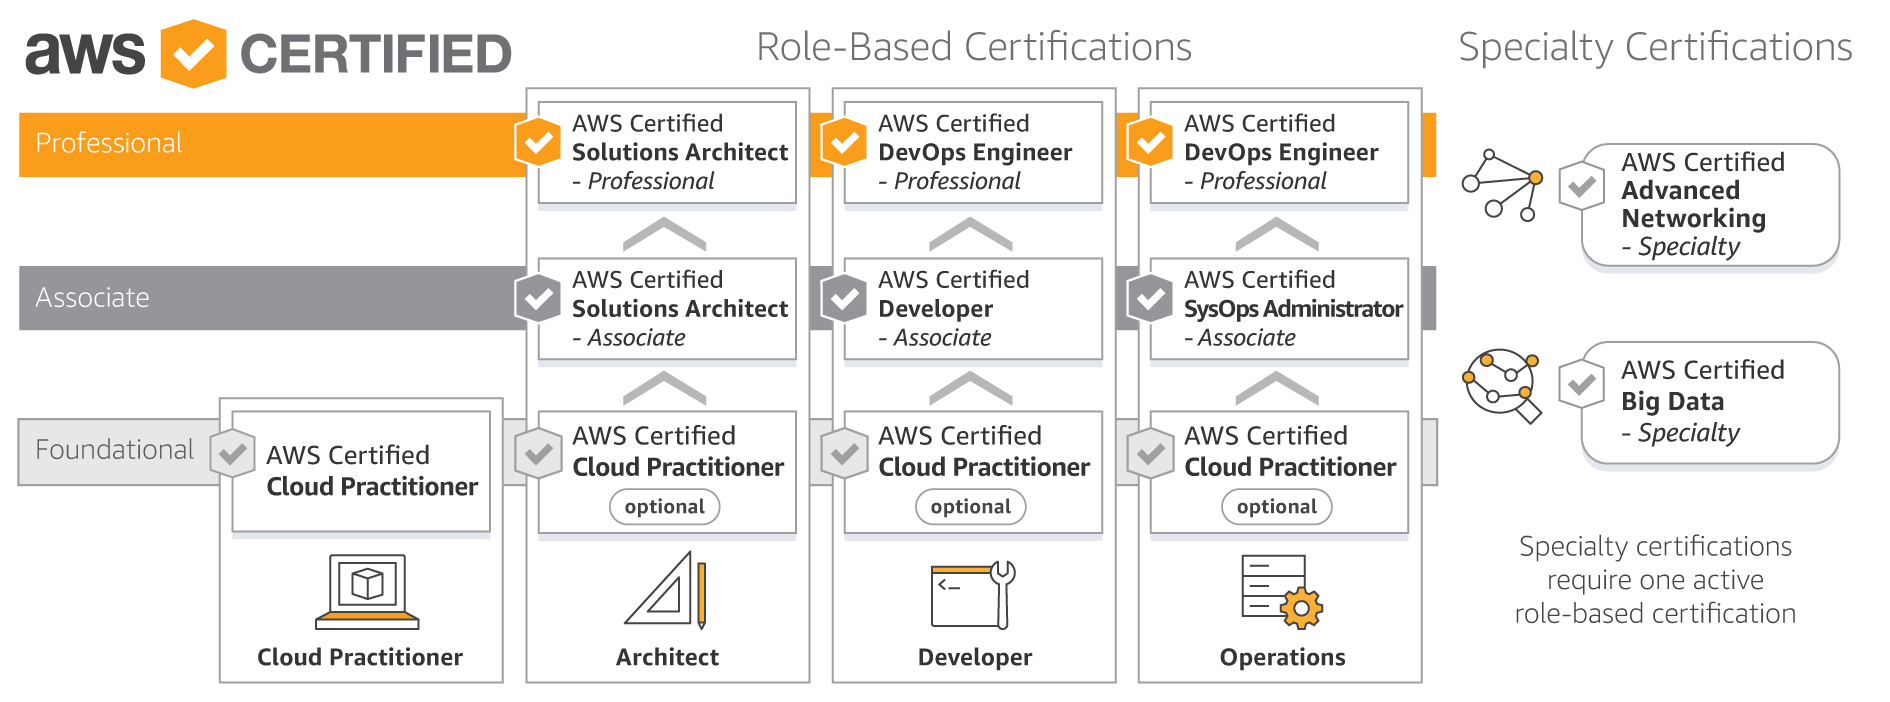 Sce 1 amazon web service aws certification 1betcityfo Gallery